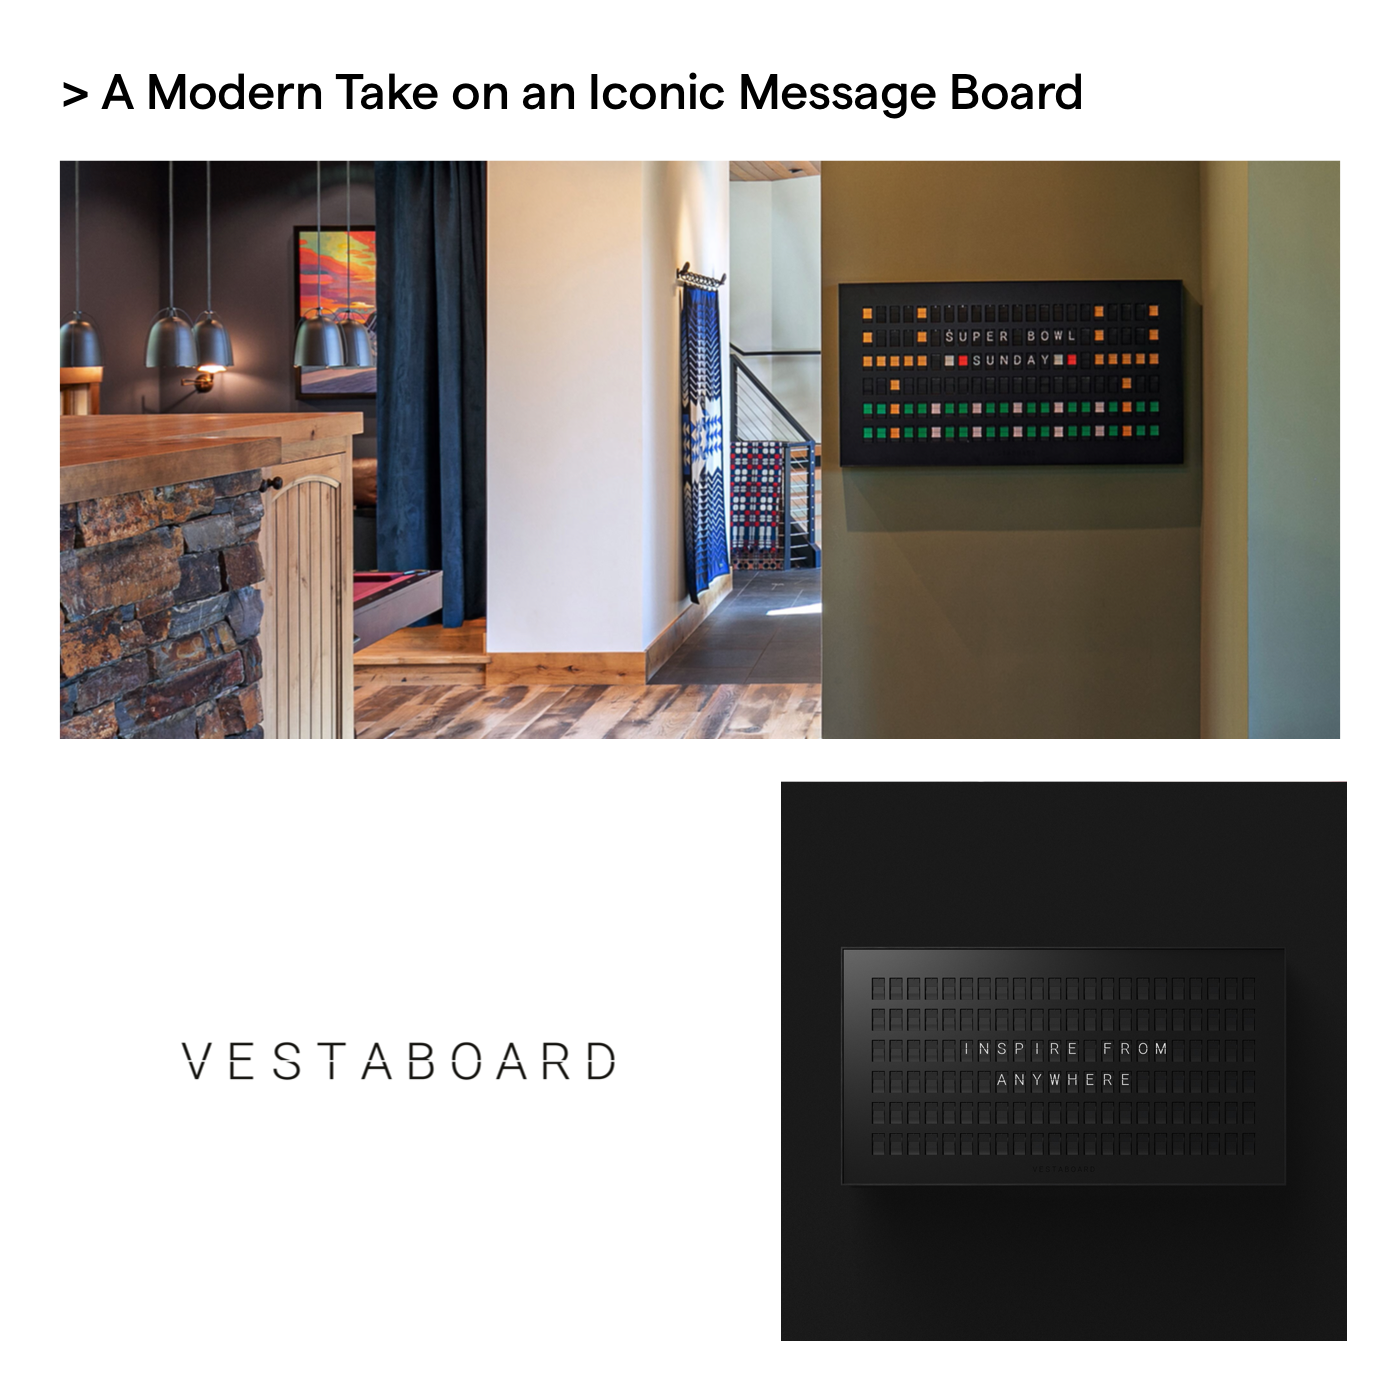 Vestaboard father's day advanced essentials gift guide